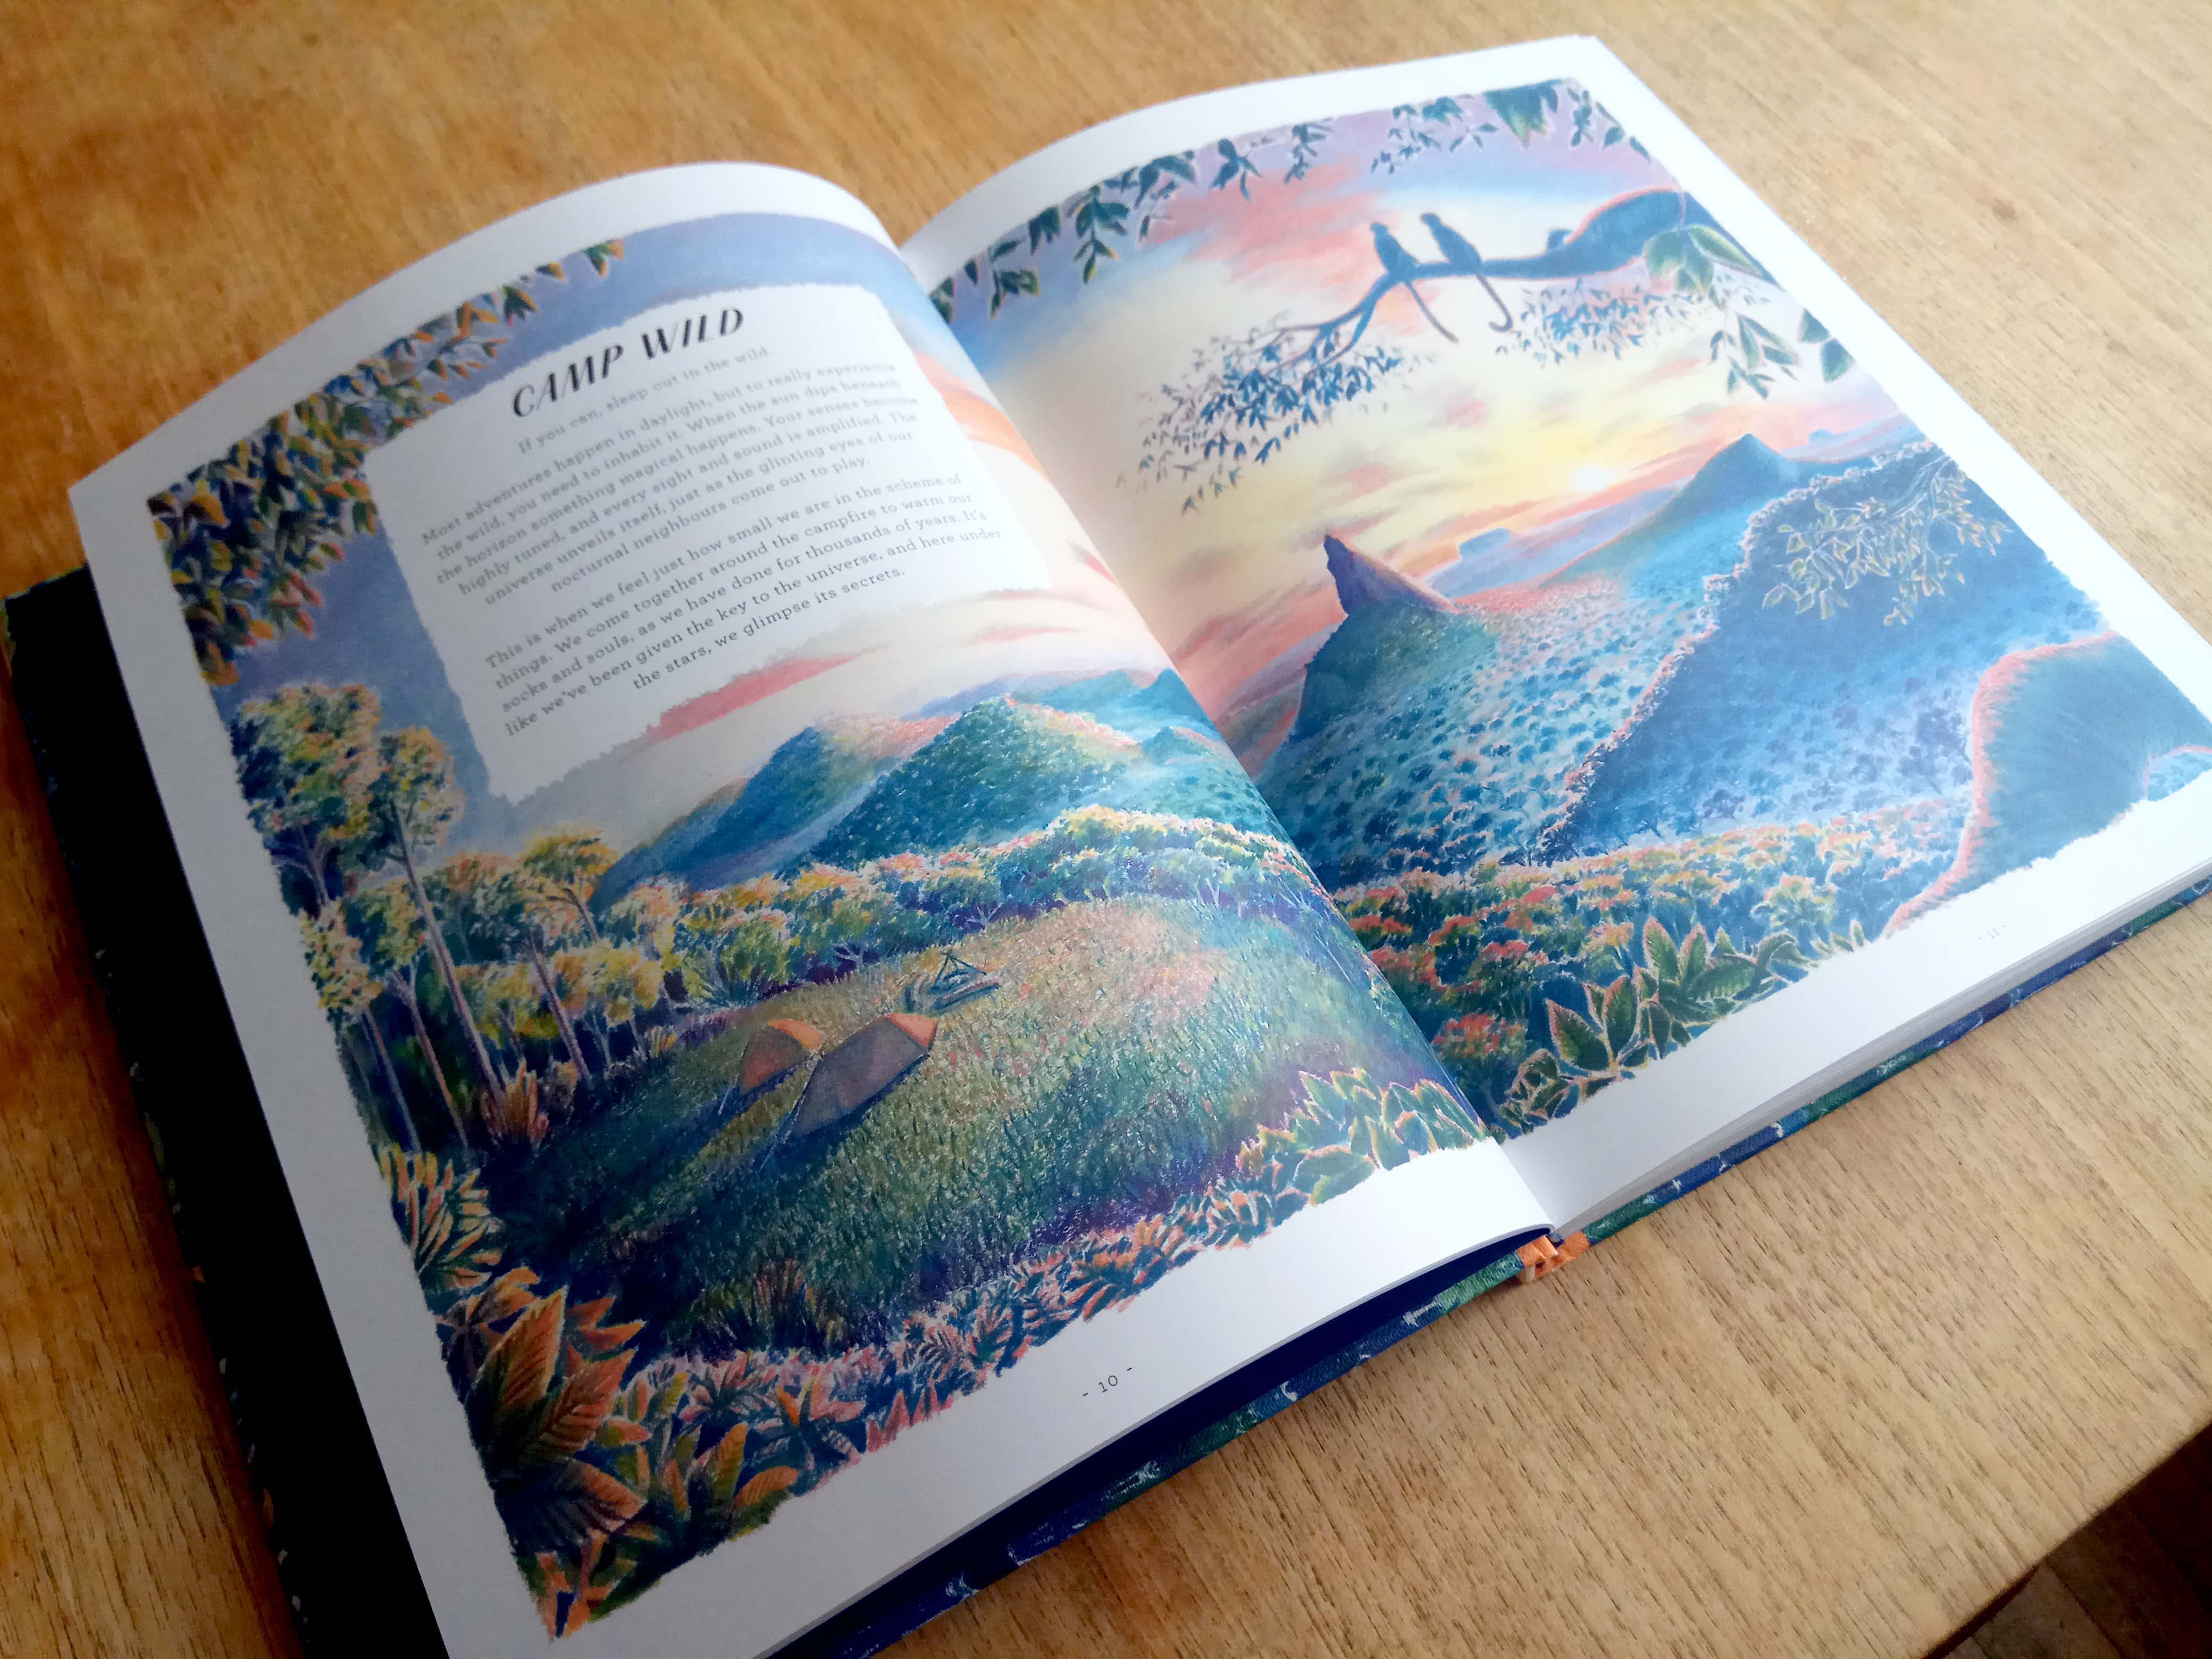 THE LOST BOOK OF ADVENTURE – REVIEW - The AOI